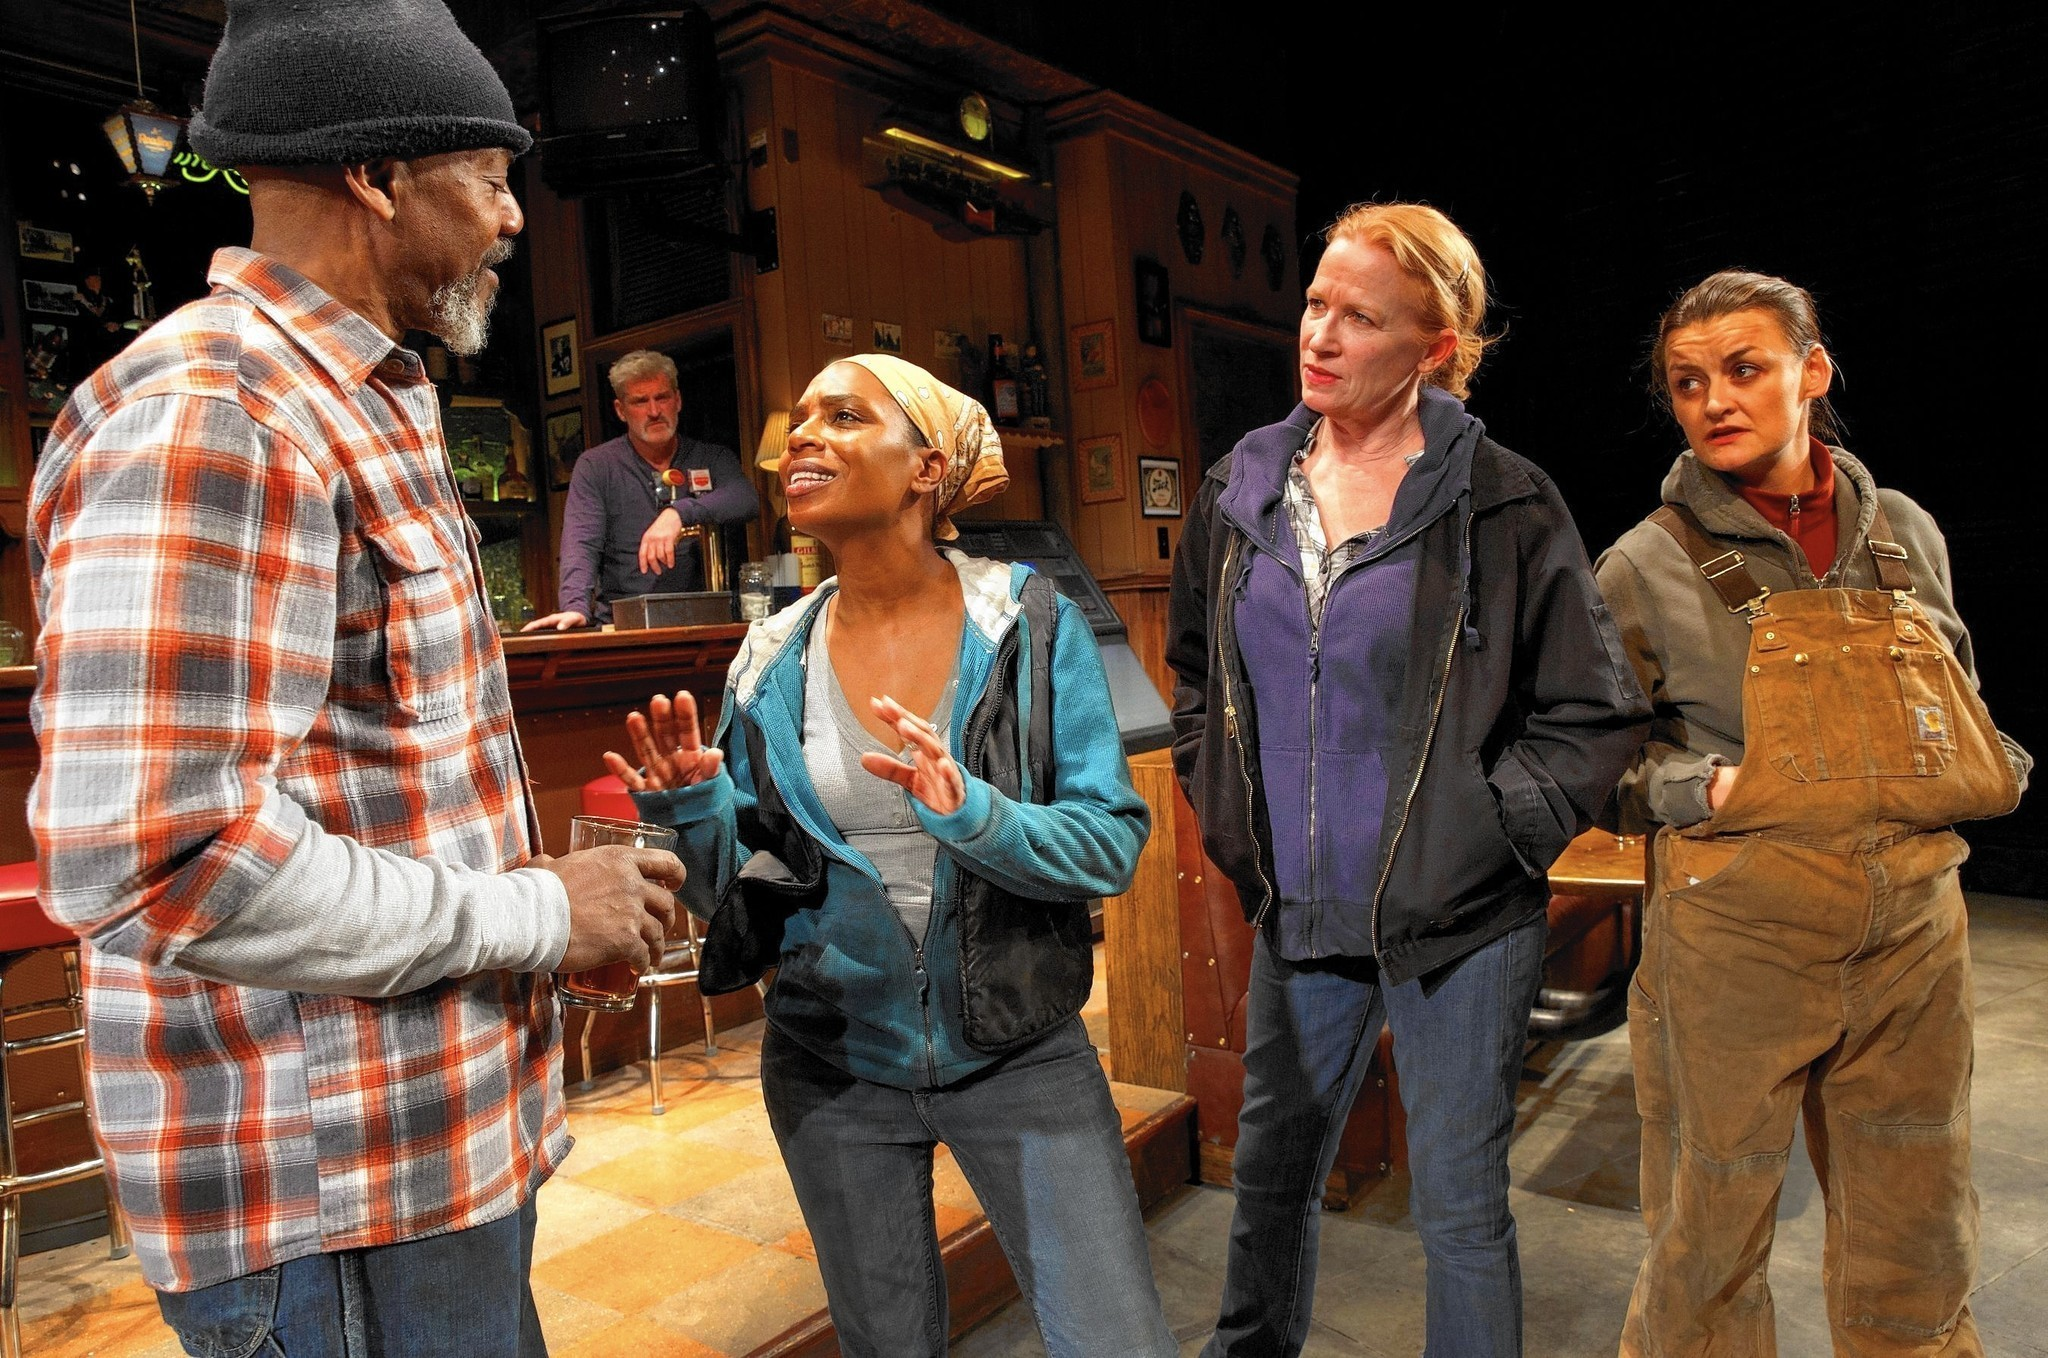 0106a17525  Sweat  is Lynn Nottage s new Broadway play about working-class  frustrations - Chicago Tribune